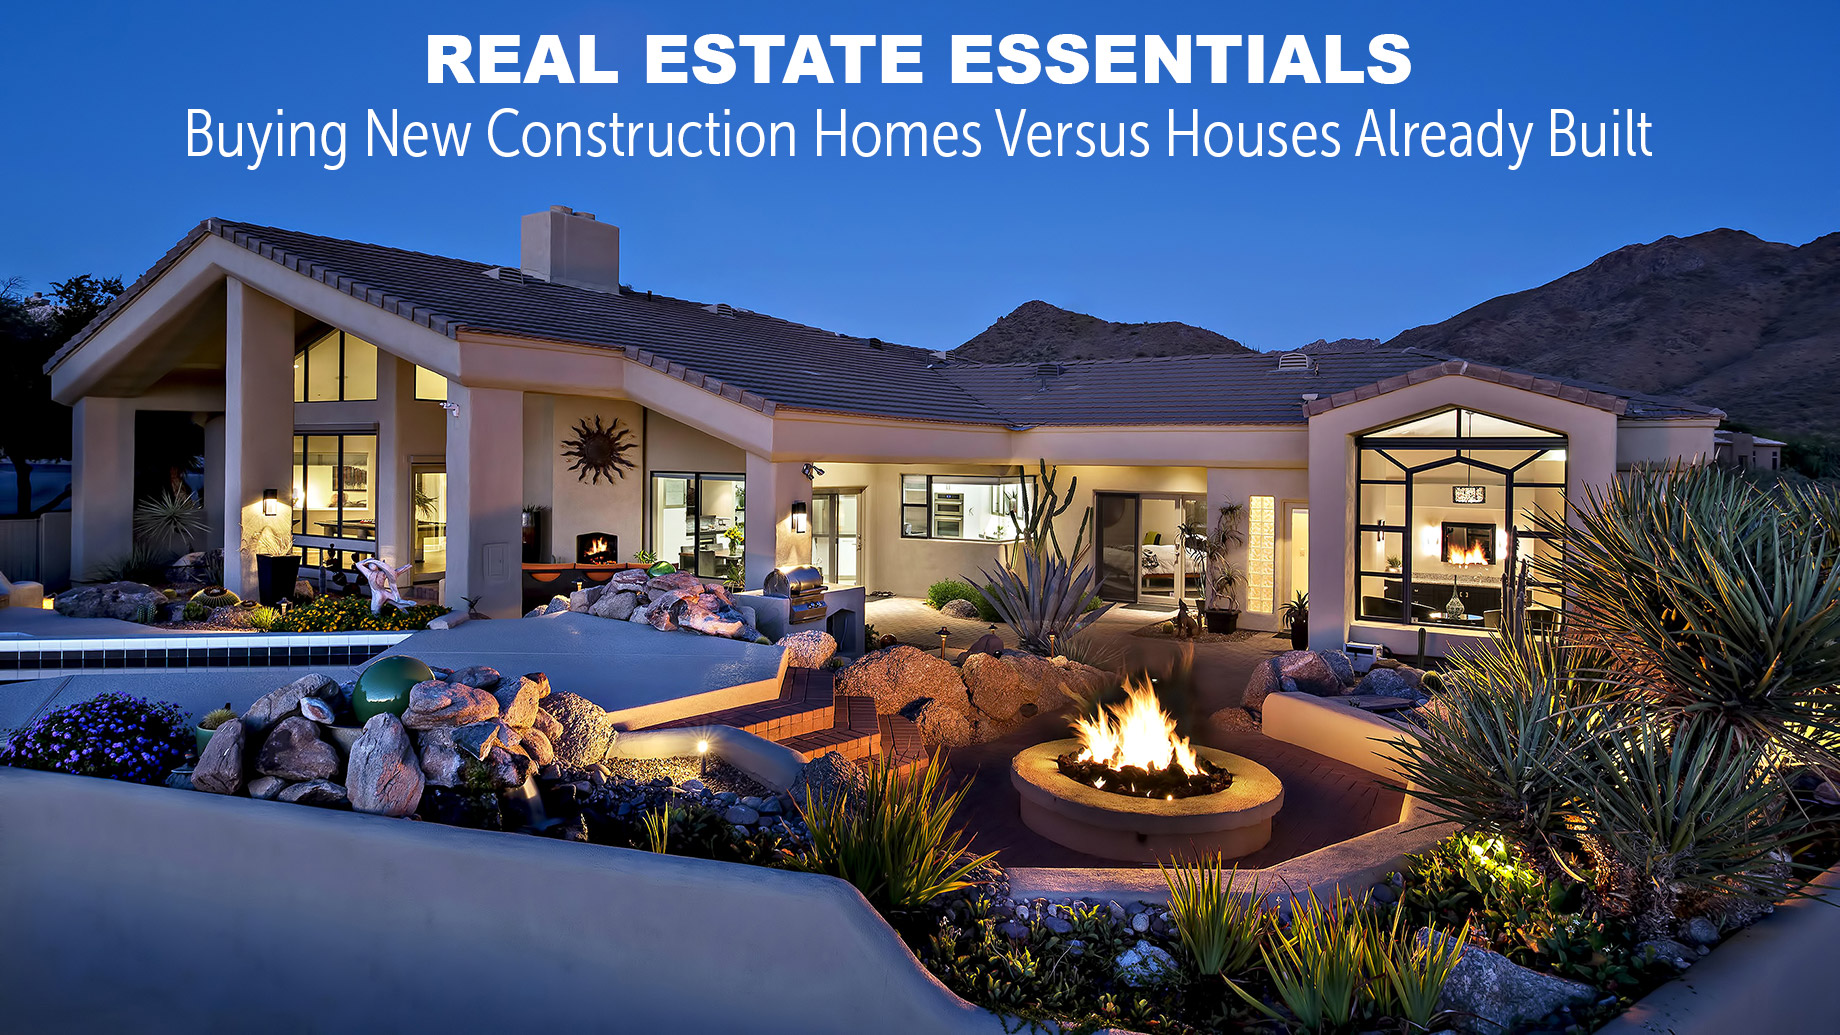 Real Estate Essentials - Buying New Construction Homes Versus Houses Already Built